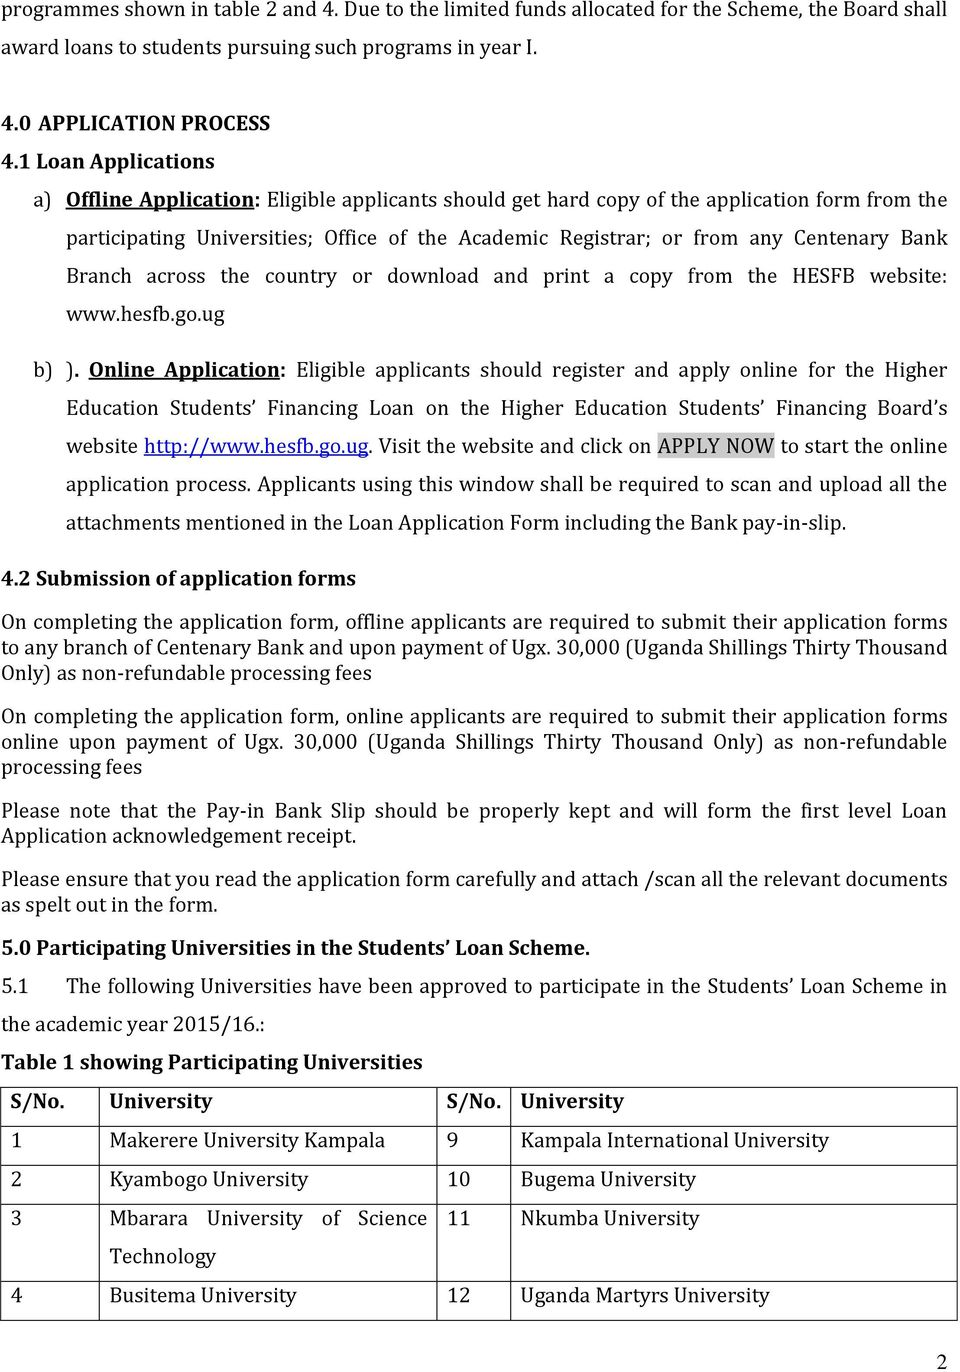 CALL FOR LOAN APPLICATIONS - PDF Student Loan Application Form Online on staff loan application form, printable loan application form, student employment application form, student loan brochure, student loan statement of account, sba loan application form, student loan costs, loan deferment form, student loan documents, payday loan application form, student loan payment, student loan interest form, student loan promissory note form, student studying in classroom, student loan repayment form, installment loan application form, student loan essay, car loan application form, student loan services, student loan request form,